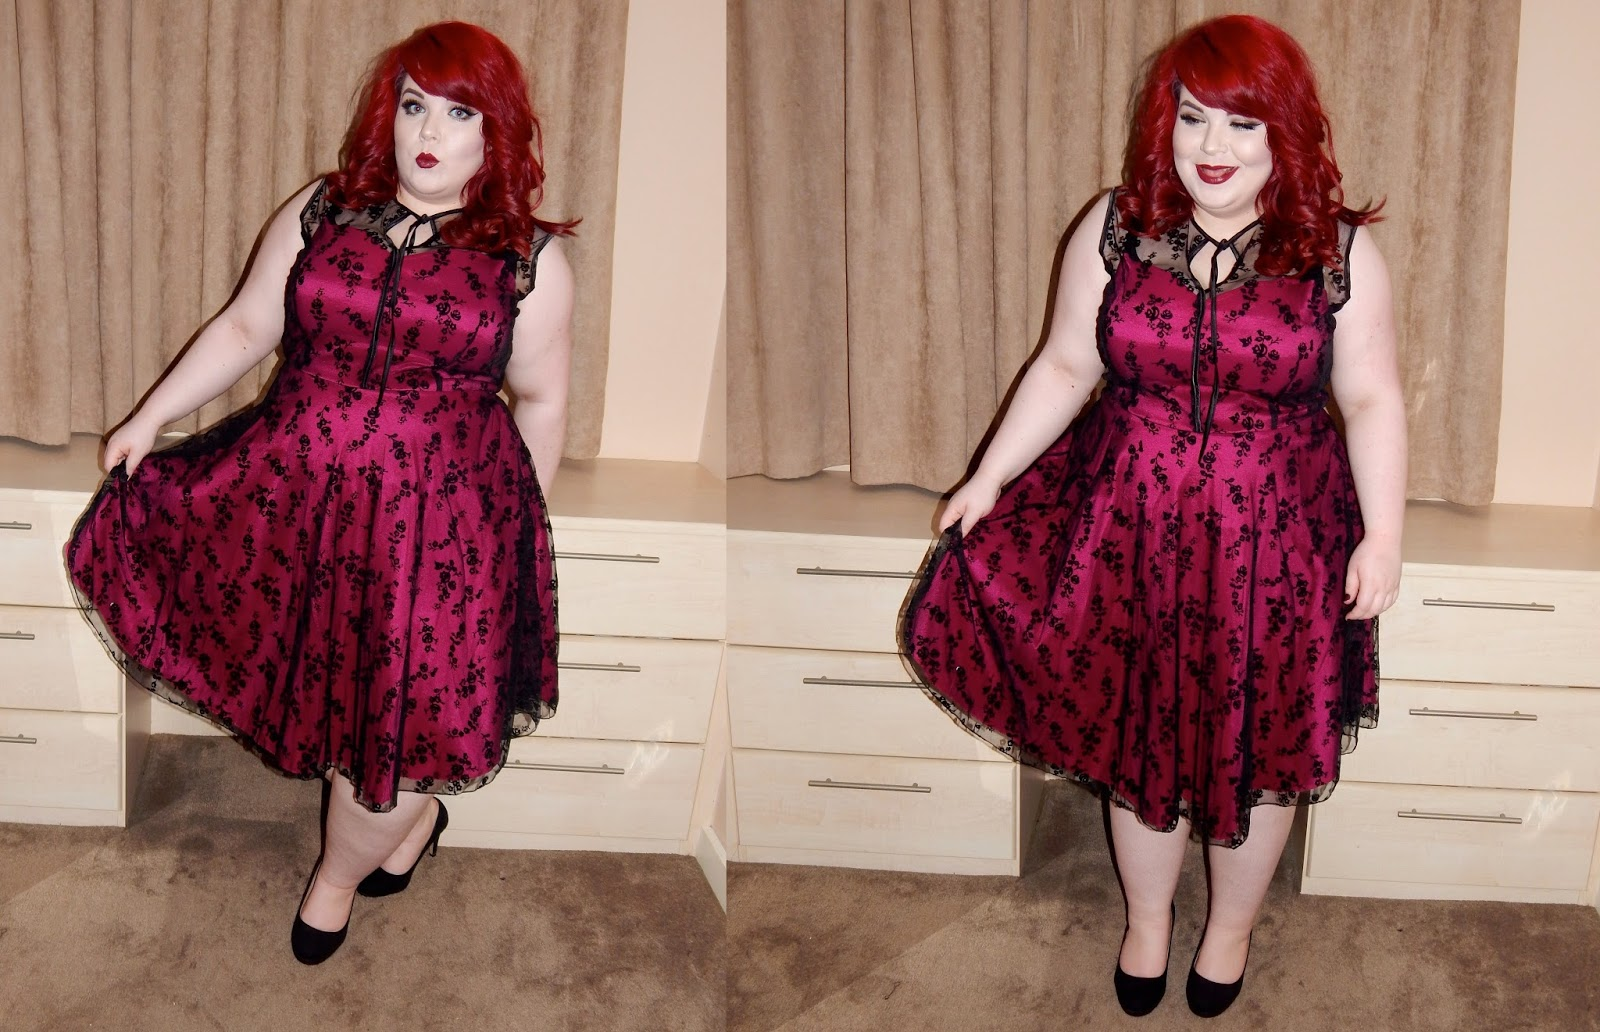 Voodoo Vixen Plus Size Hattie Dress, plus size blogger, shemightbeloved, georgina grogan